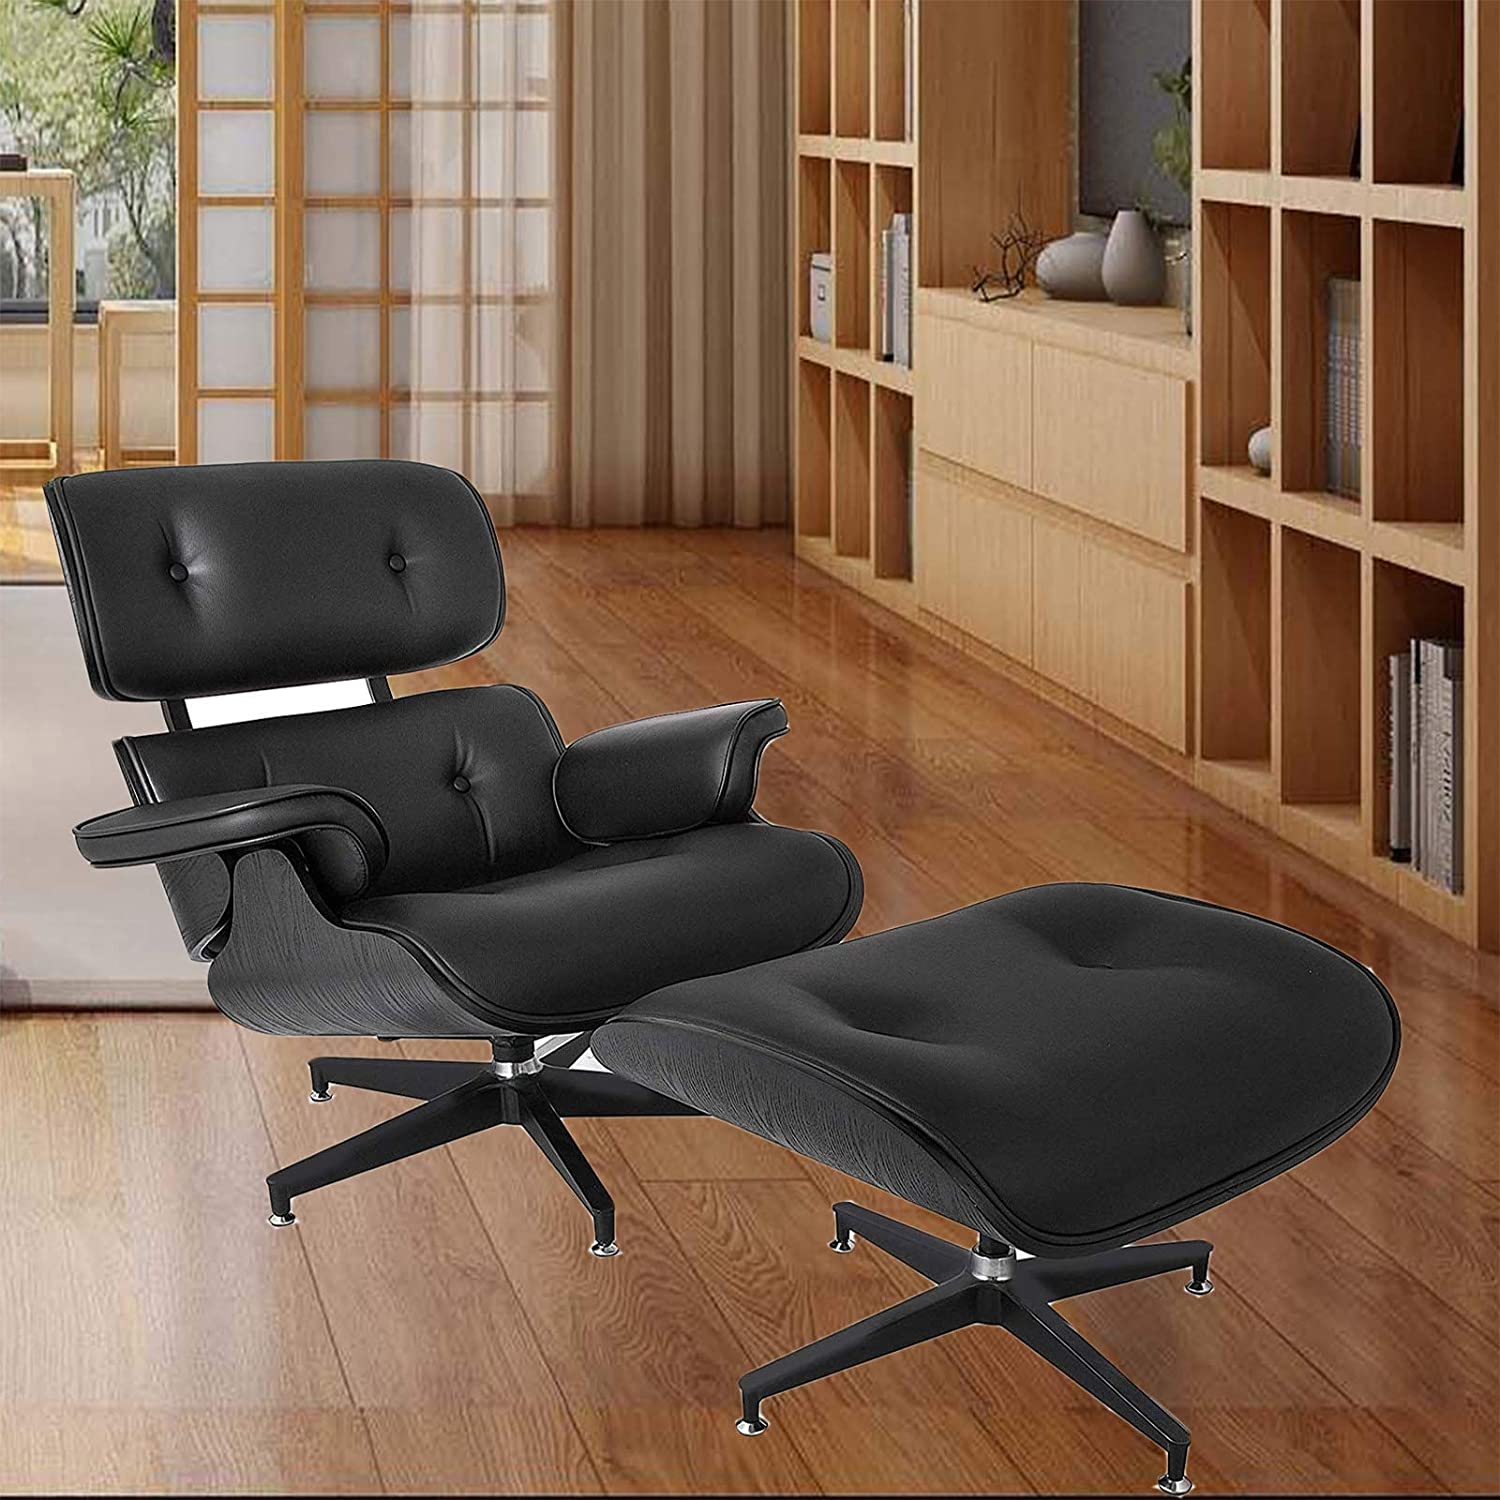 Mophorn Lounge Chair with Ottoman Mid Century Modern Replica